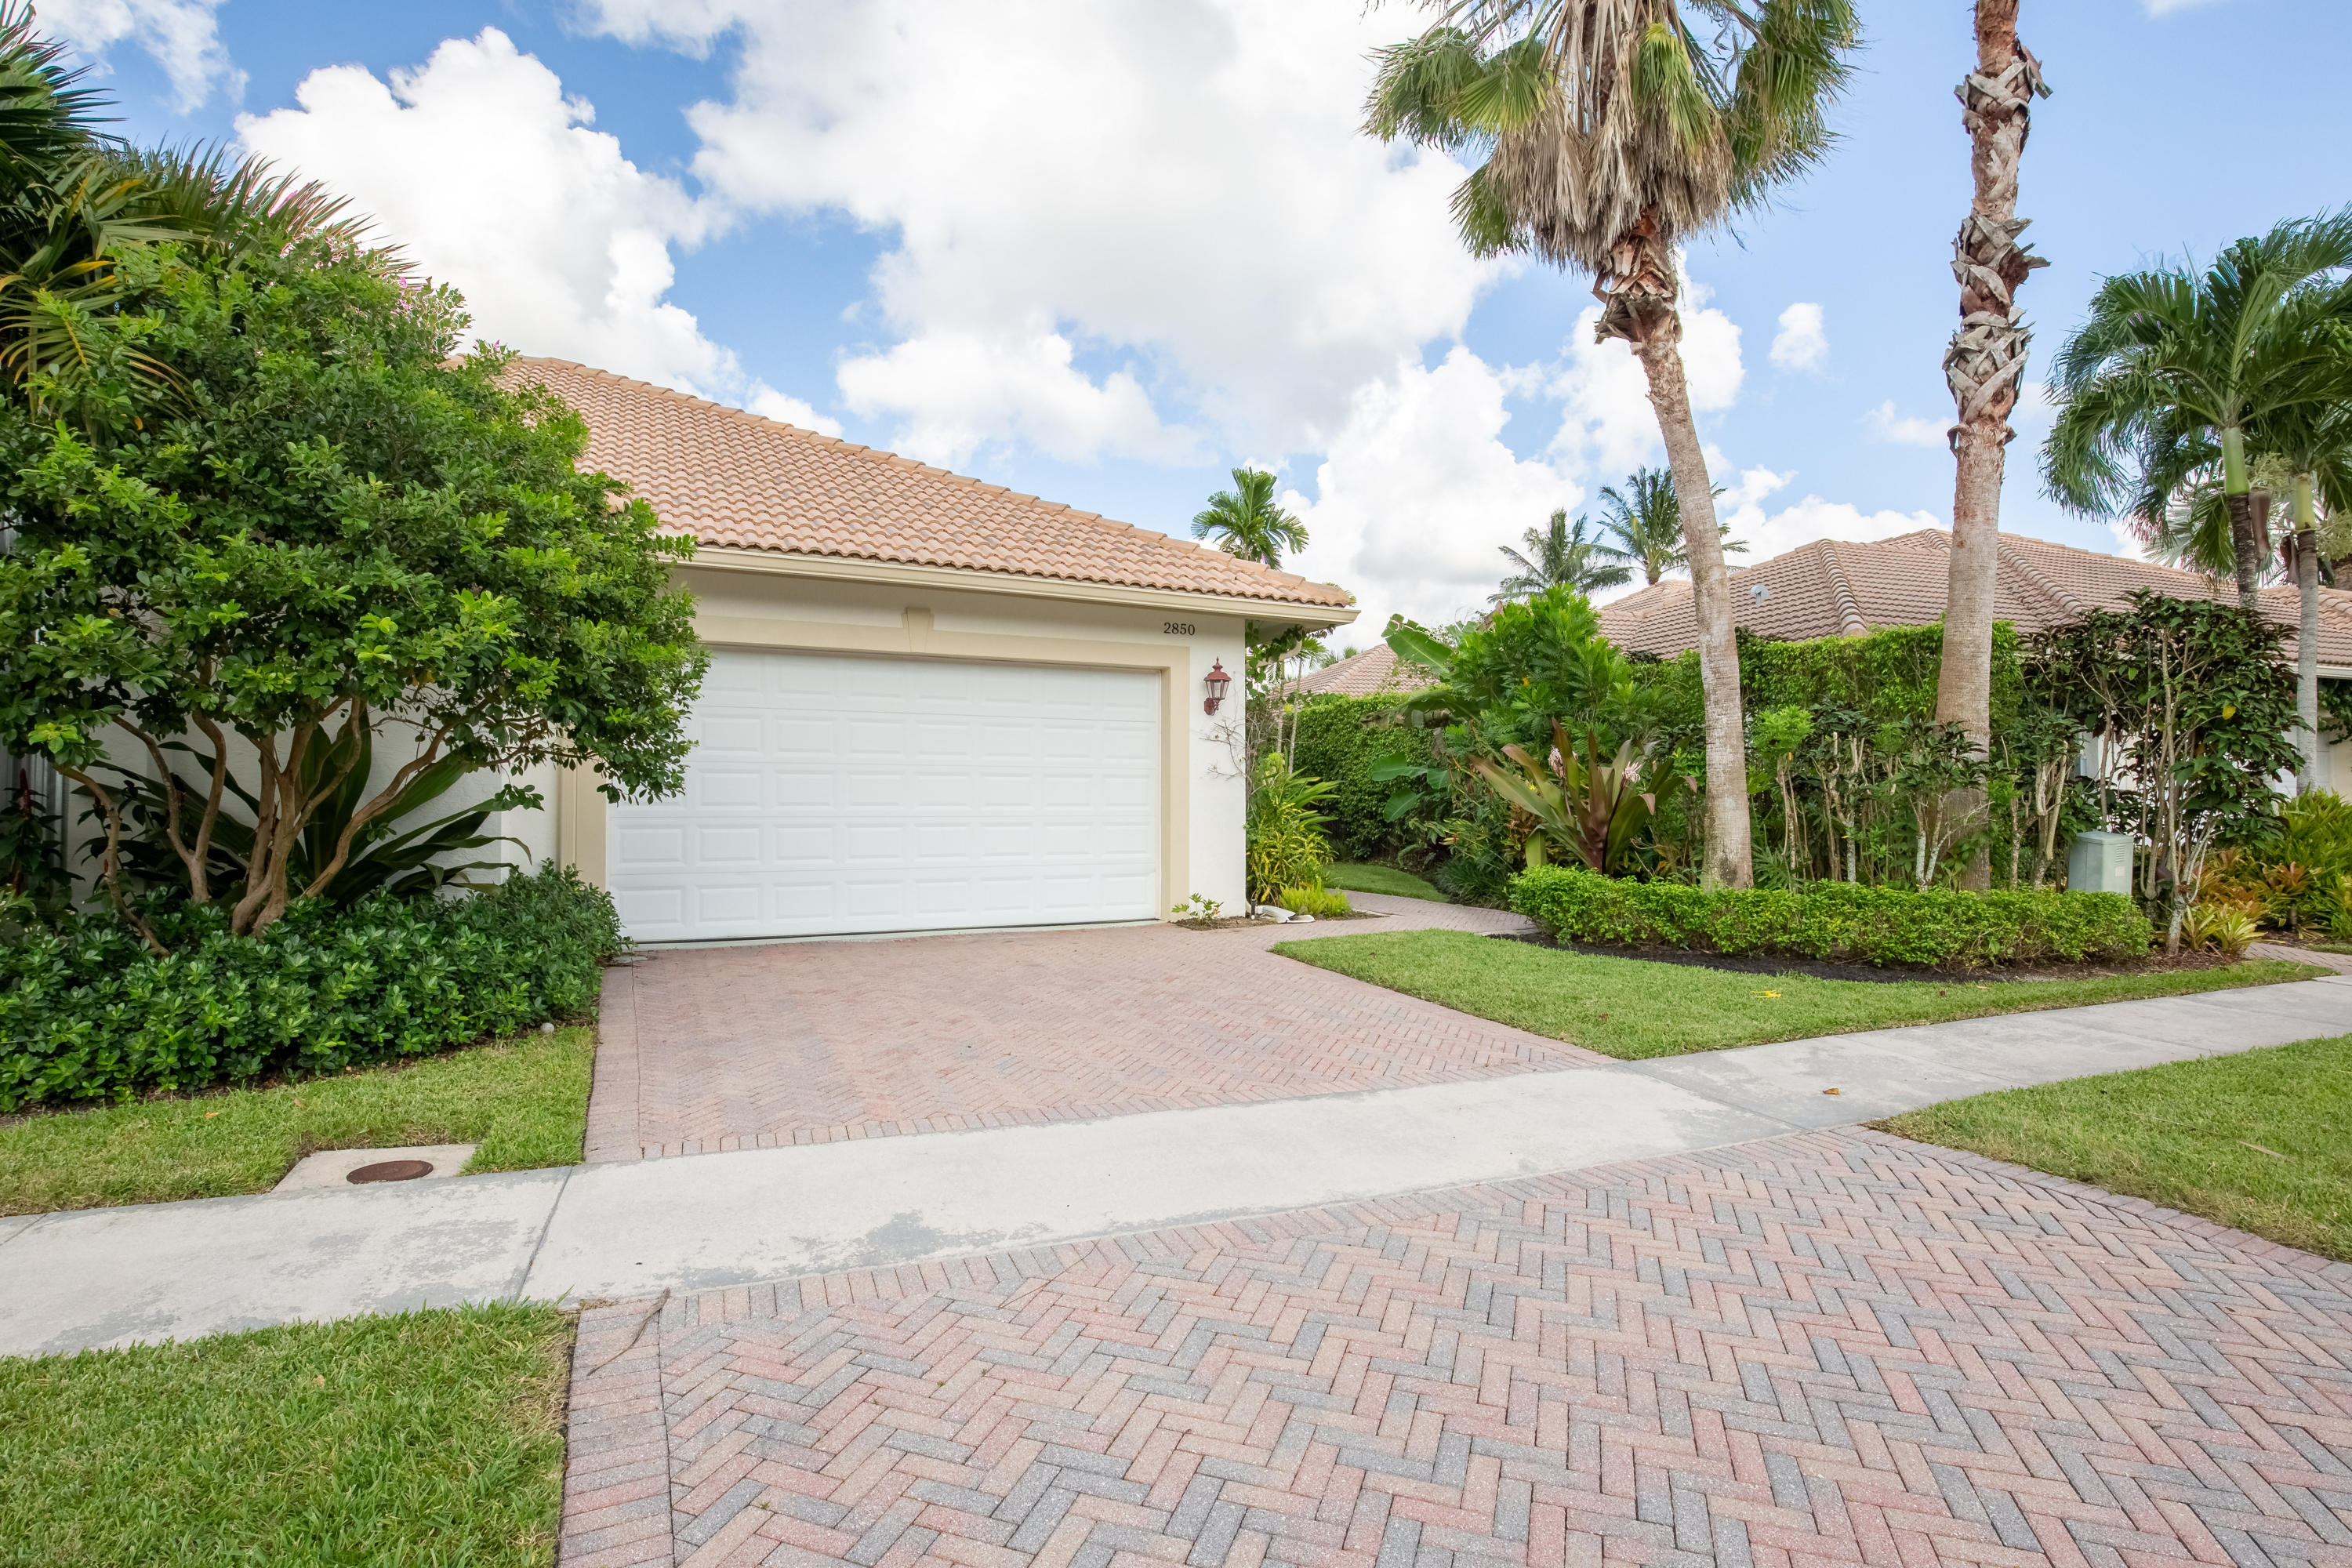 2850 Twin Oaks Way, Wellington, Florida 33414, 3 Bedrooms Bedrooms, ,3 BathroomsBathrooms,Townhouse,For Sale,Twin Oaks,RX-10560932